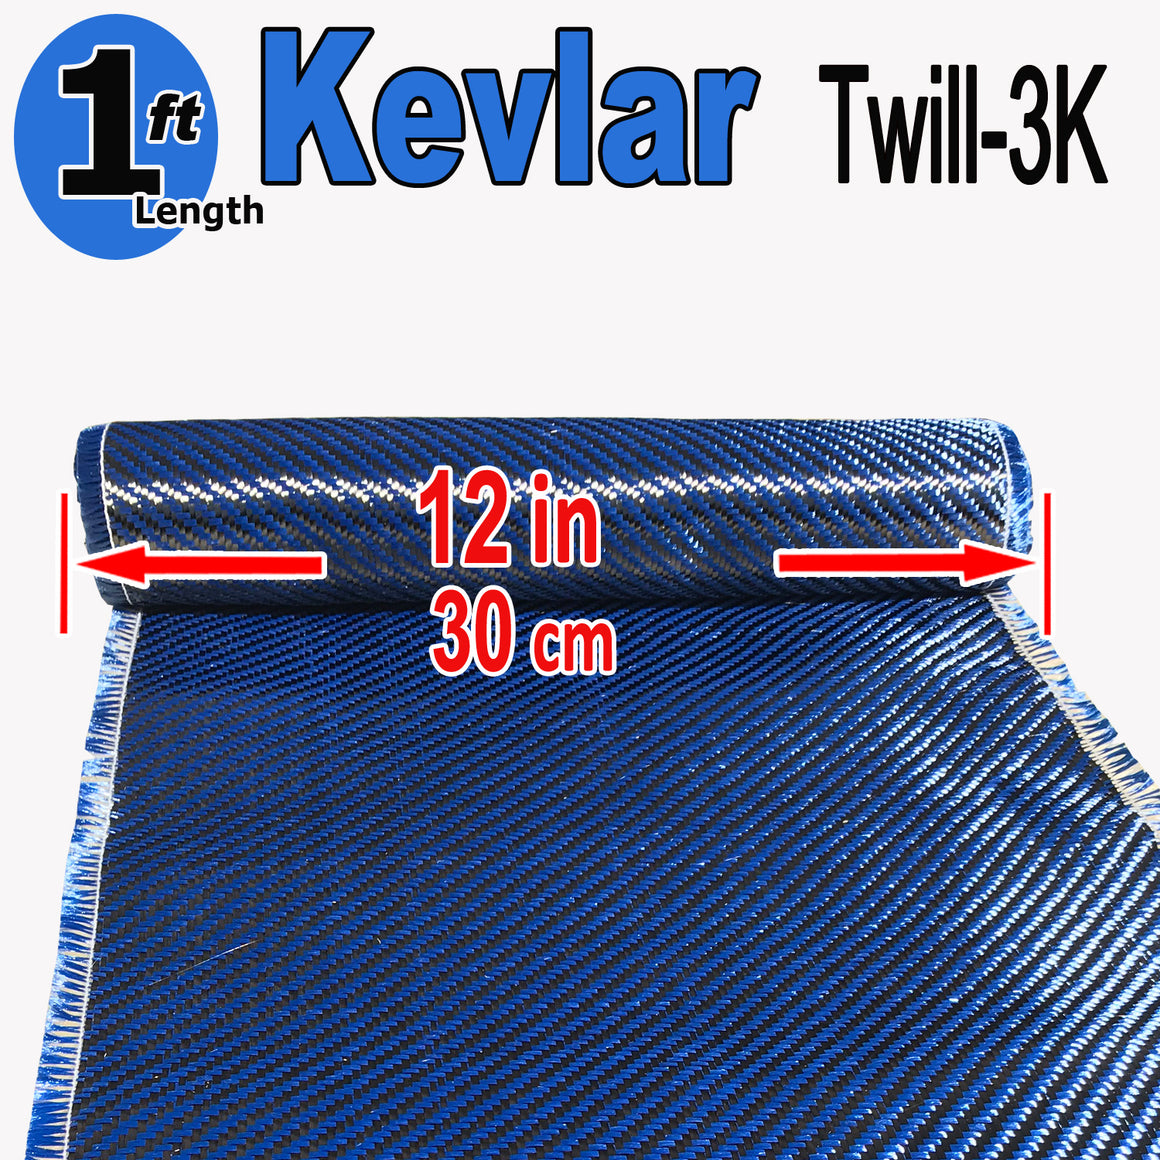 KEVLAR ARAMID  Fabric - 12 in x 1 ft - Twill  - 240g/m2 - 3K TOW (Blue)